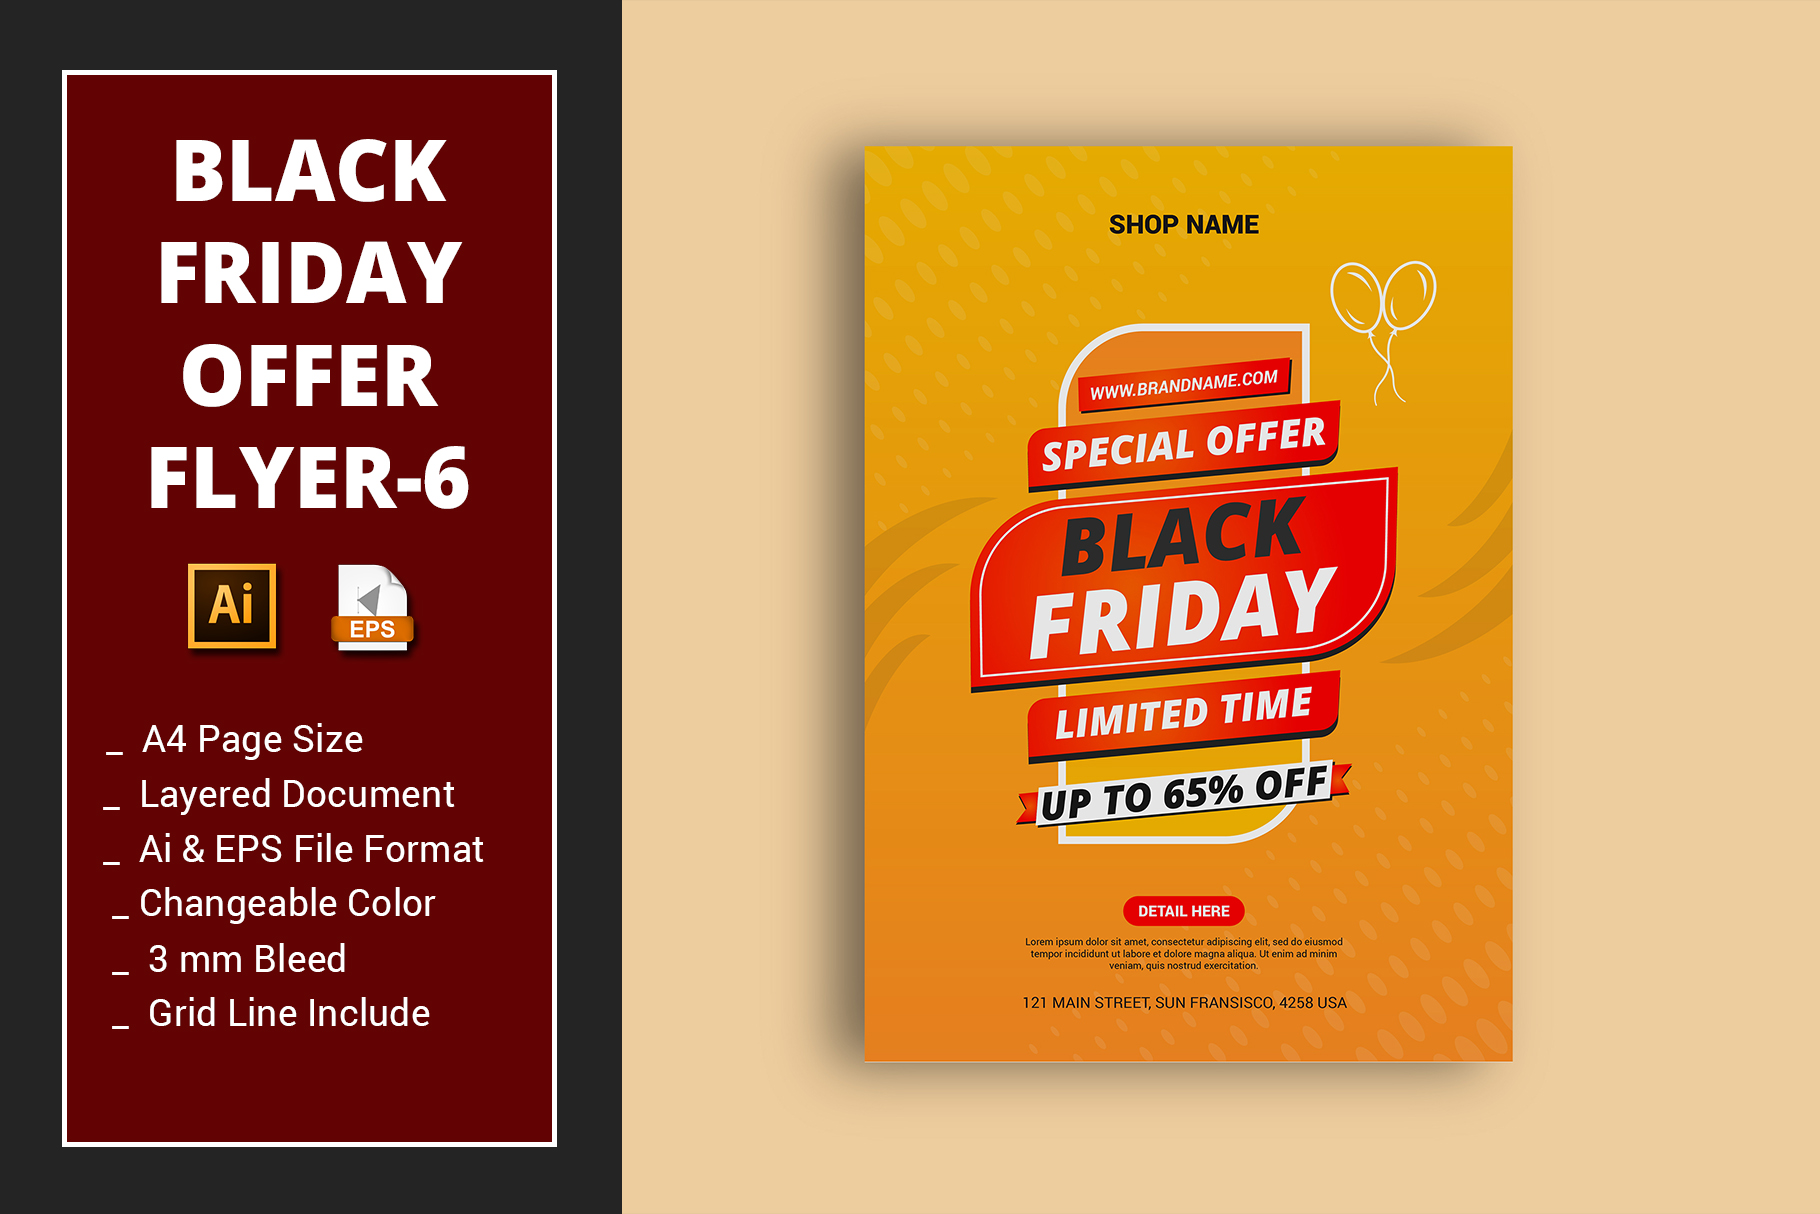 Black Friday Offer Flyer 6 Graphic By Alimran24 Creative Fabrica